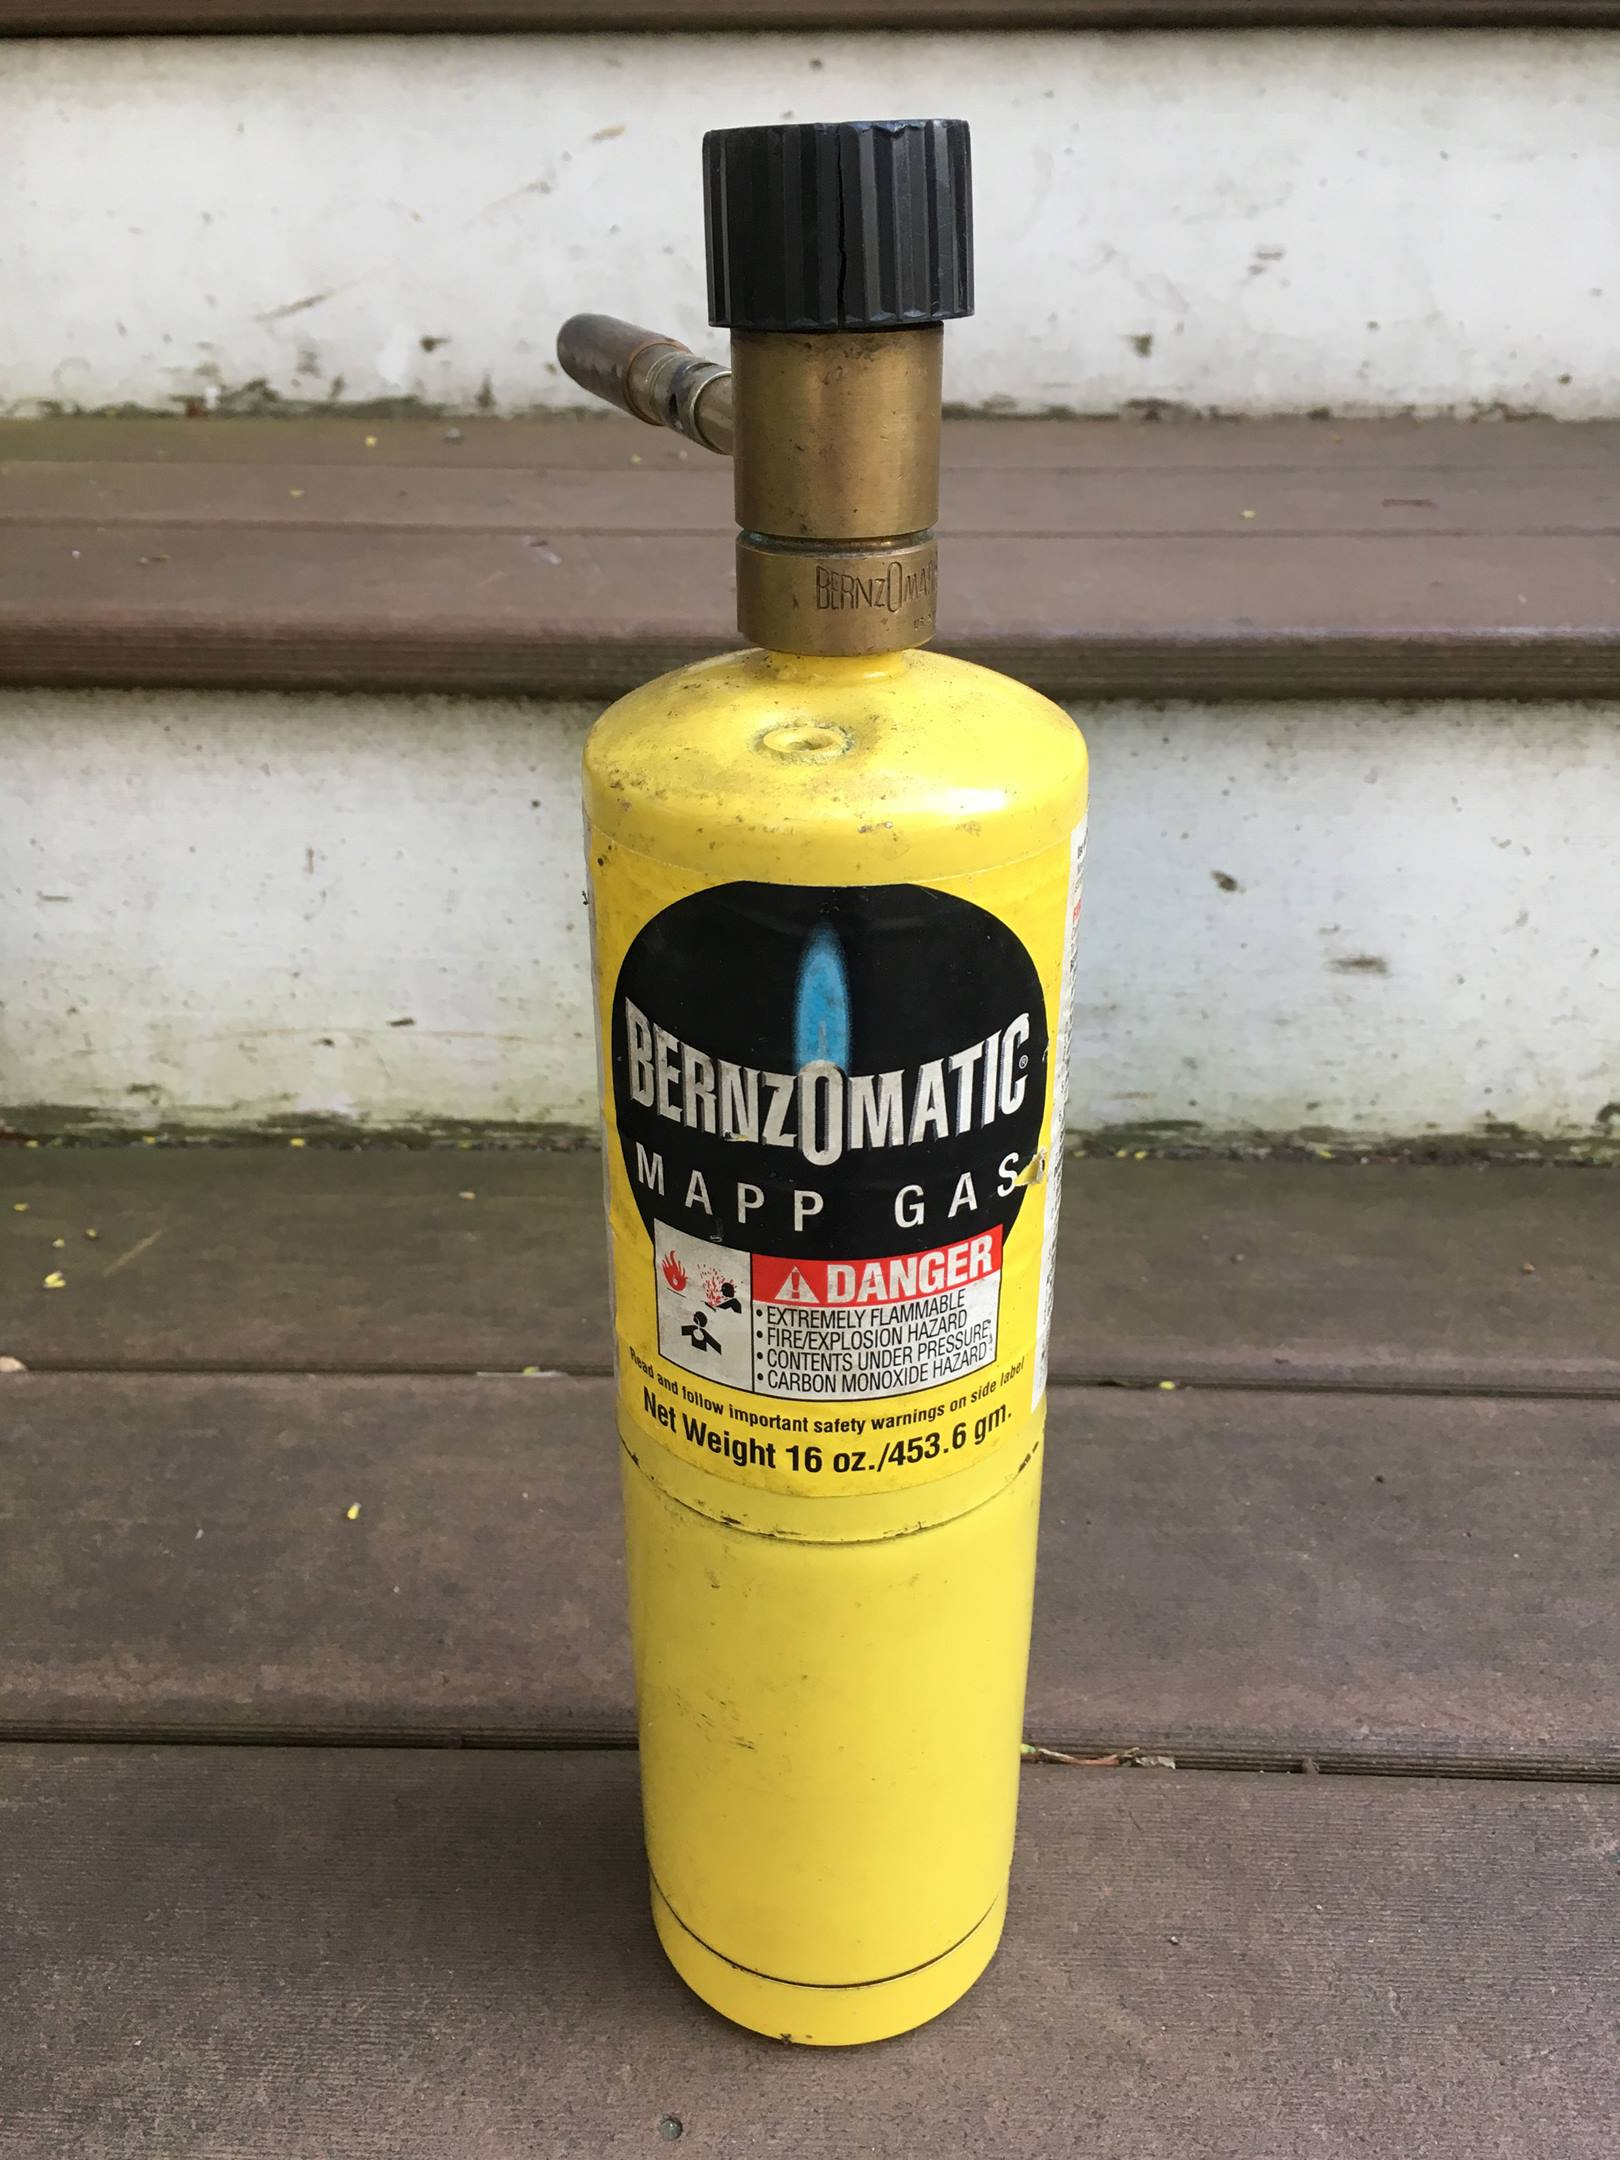 Don't even try propane. Go straight to MAPP gas.